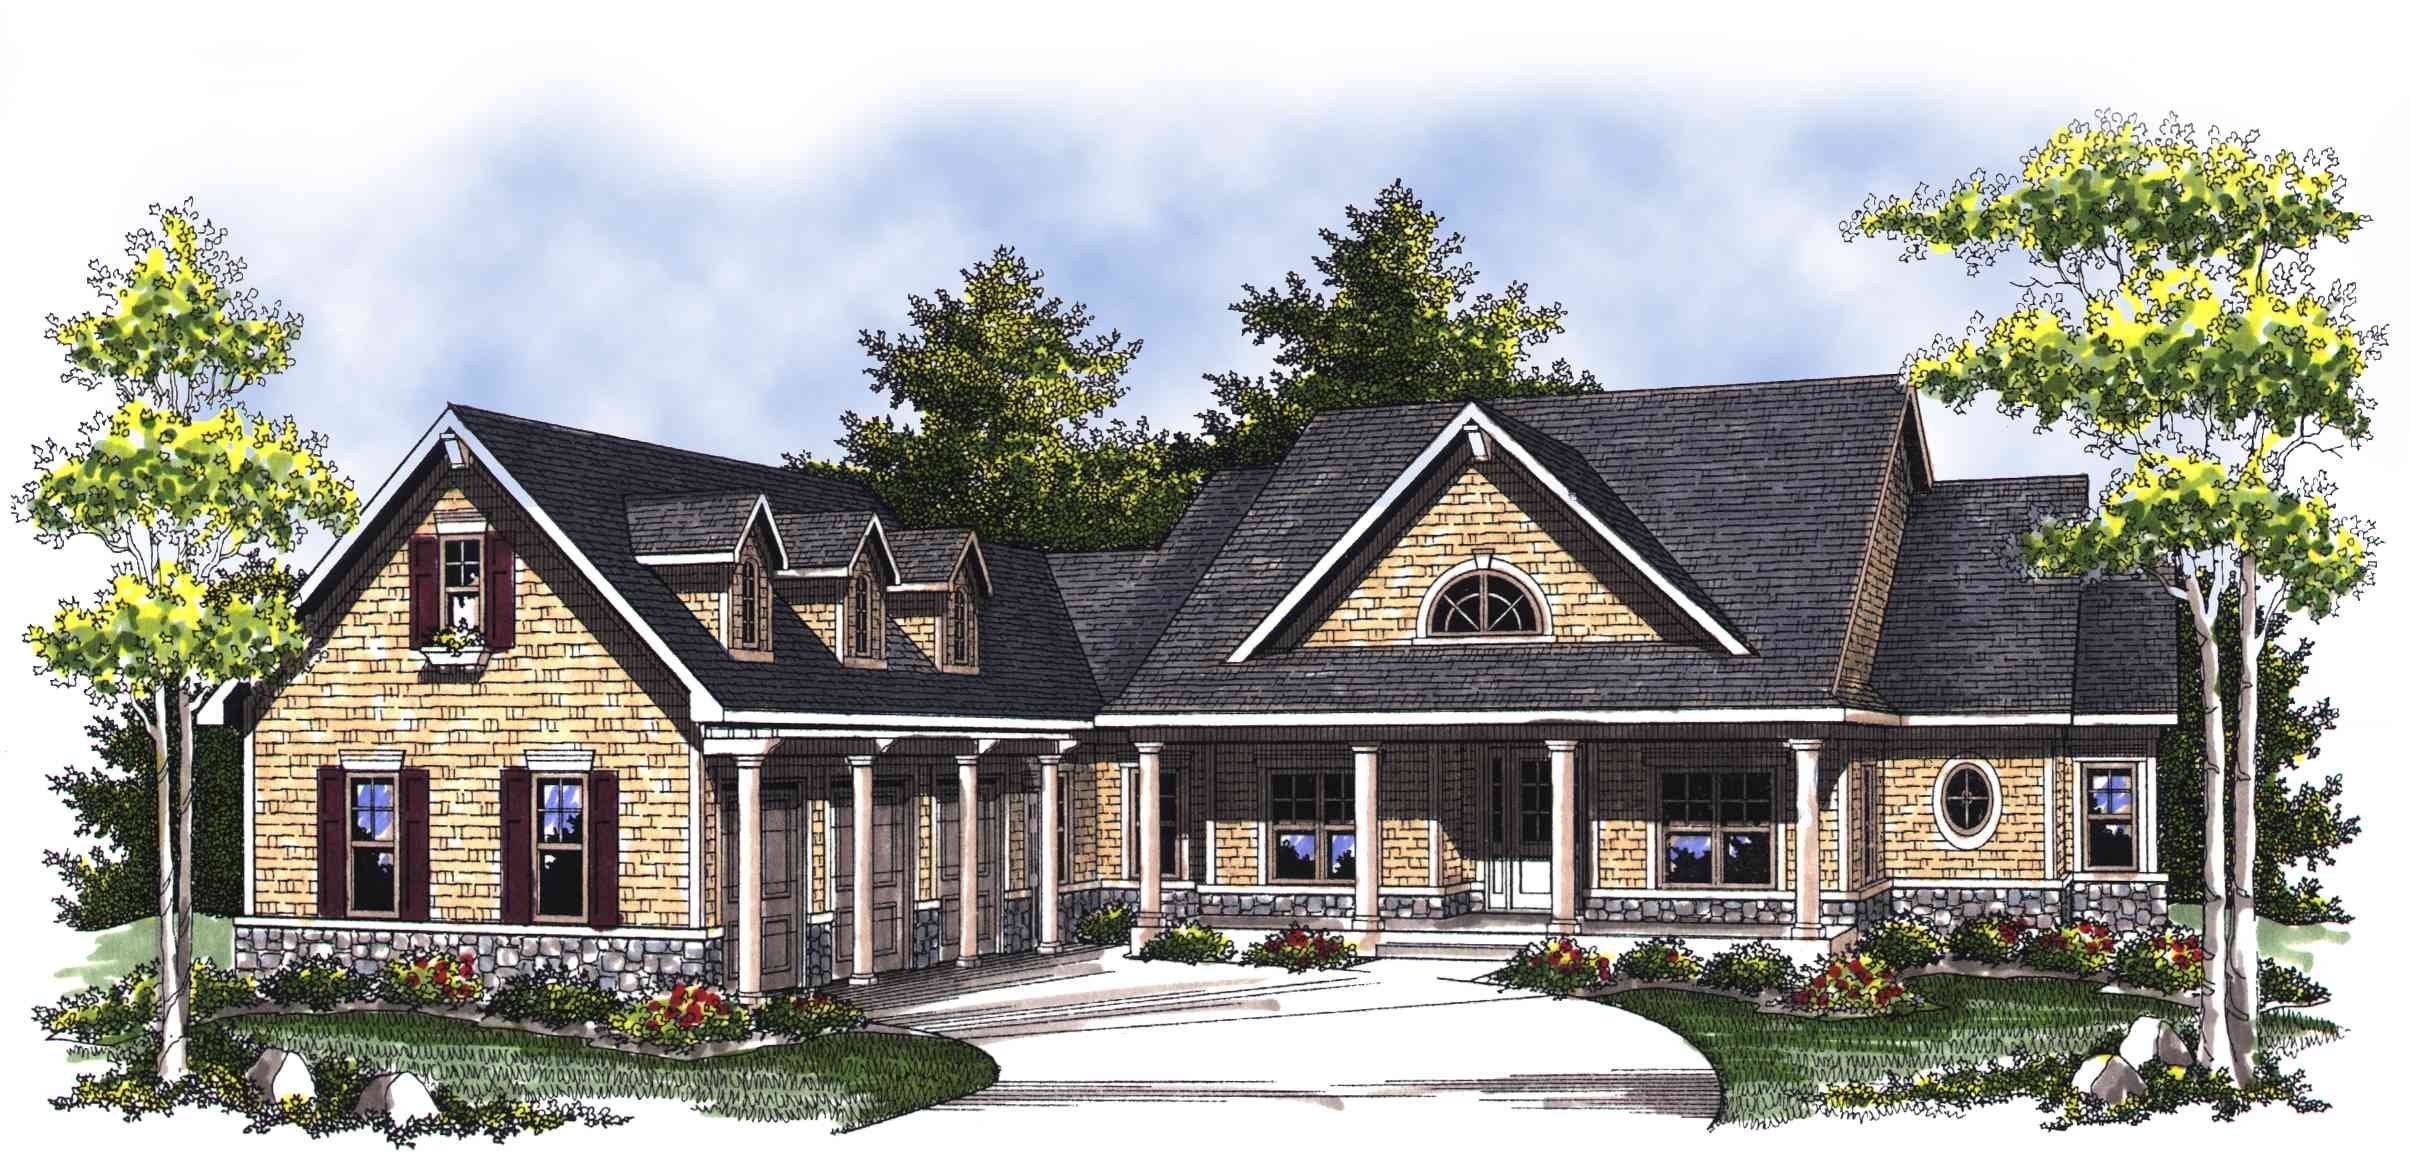 Plan 89288ah Classic Country Ranch Home Plan Country Style House Plans Farmhouse Style House Plans Ranch Style House Plans